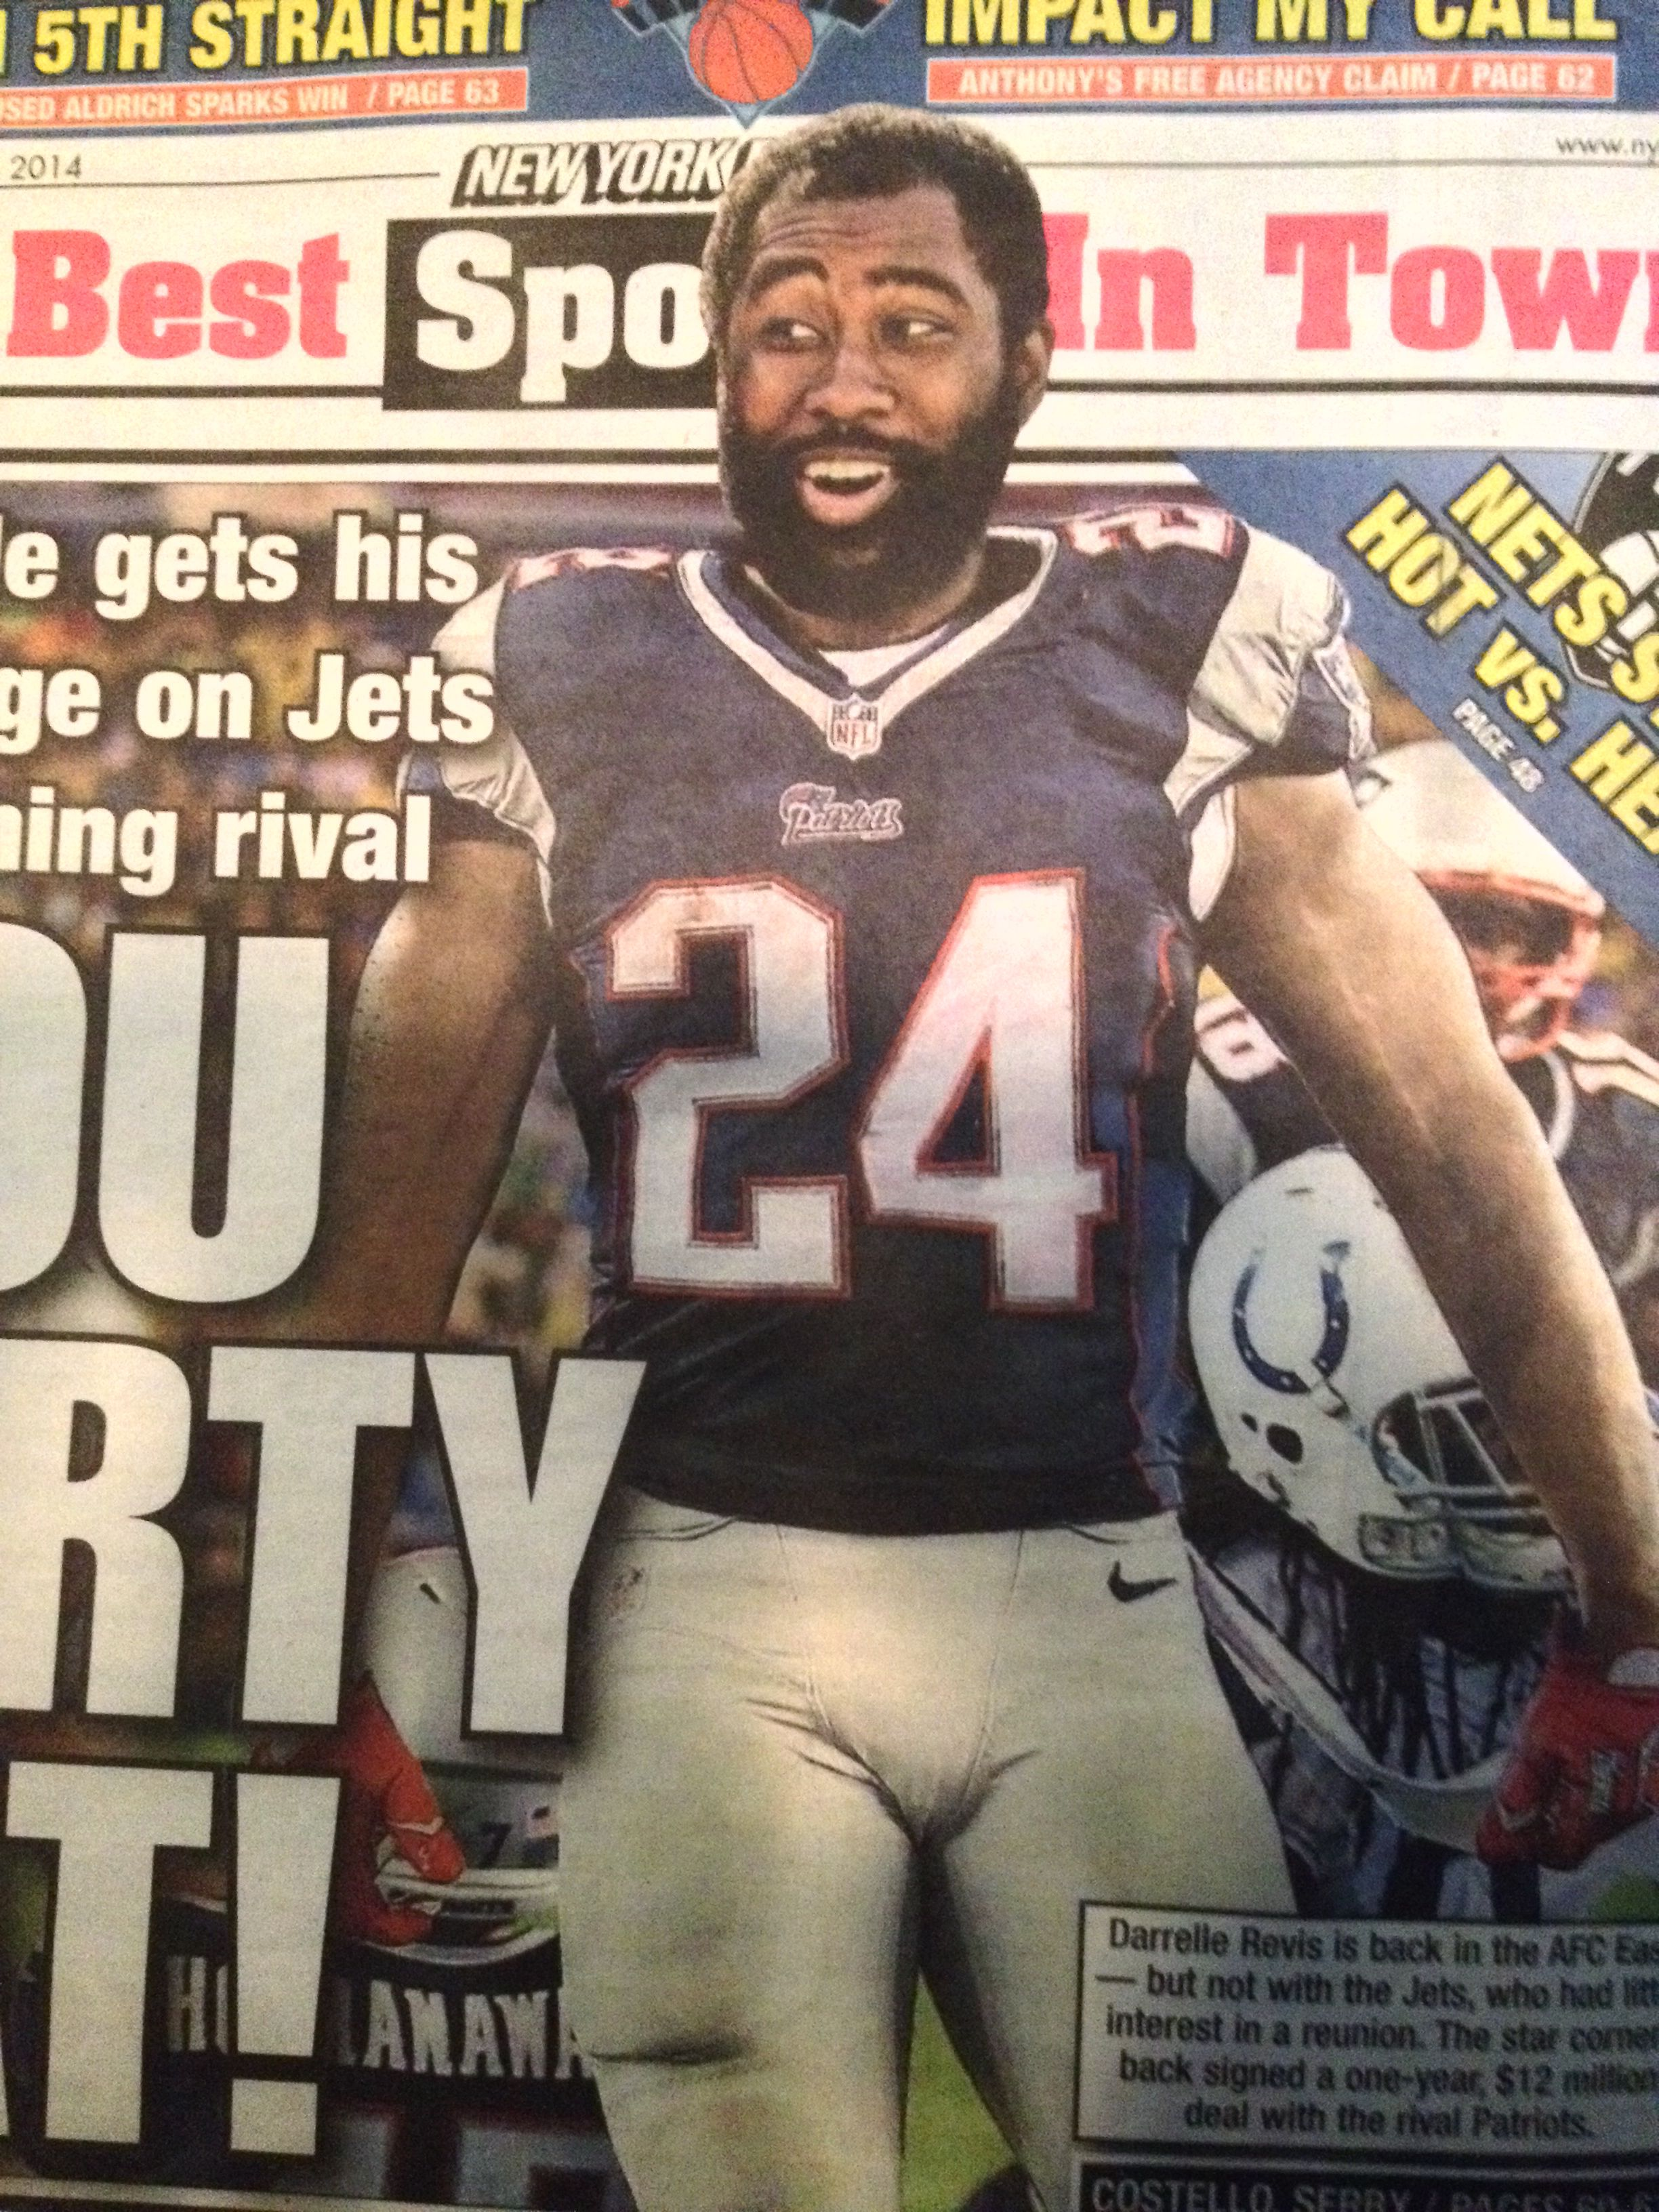 The Most Narcissistic Douche In Football Ms Revis It S Not Darryl As Dar Ell It S Darelle As In Da Rell The B Sports New England Patriots Darrelle Revis